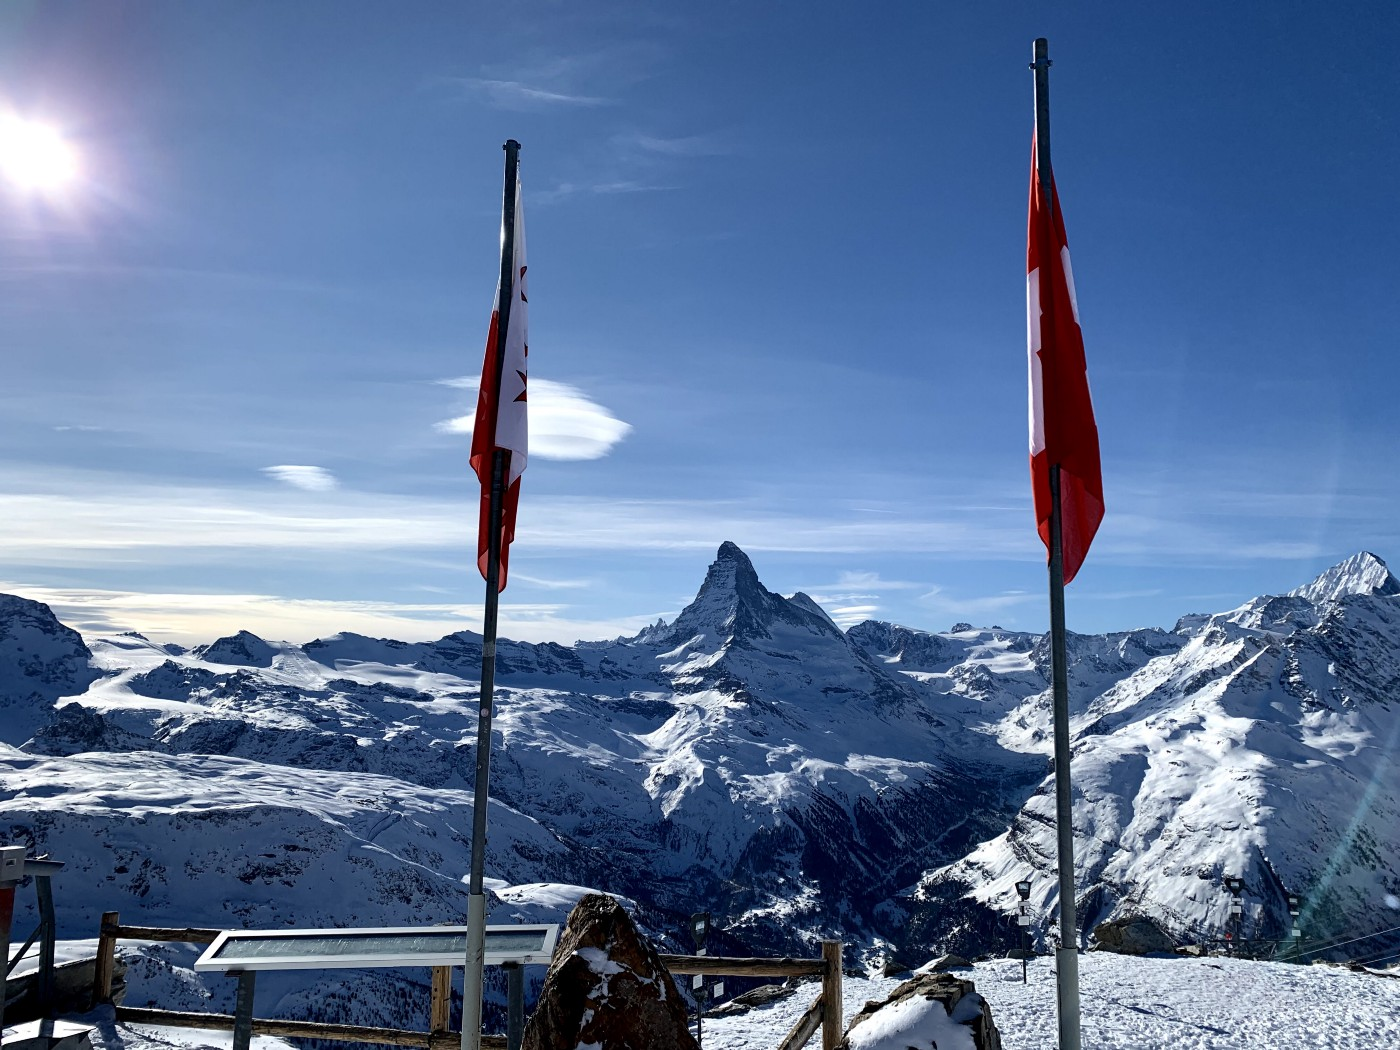 The Matterhorn in between a Valais canton flag and a Swiss flag